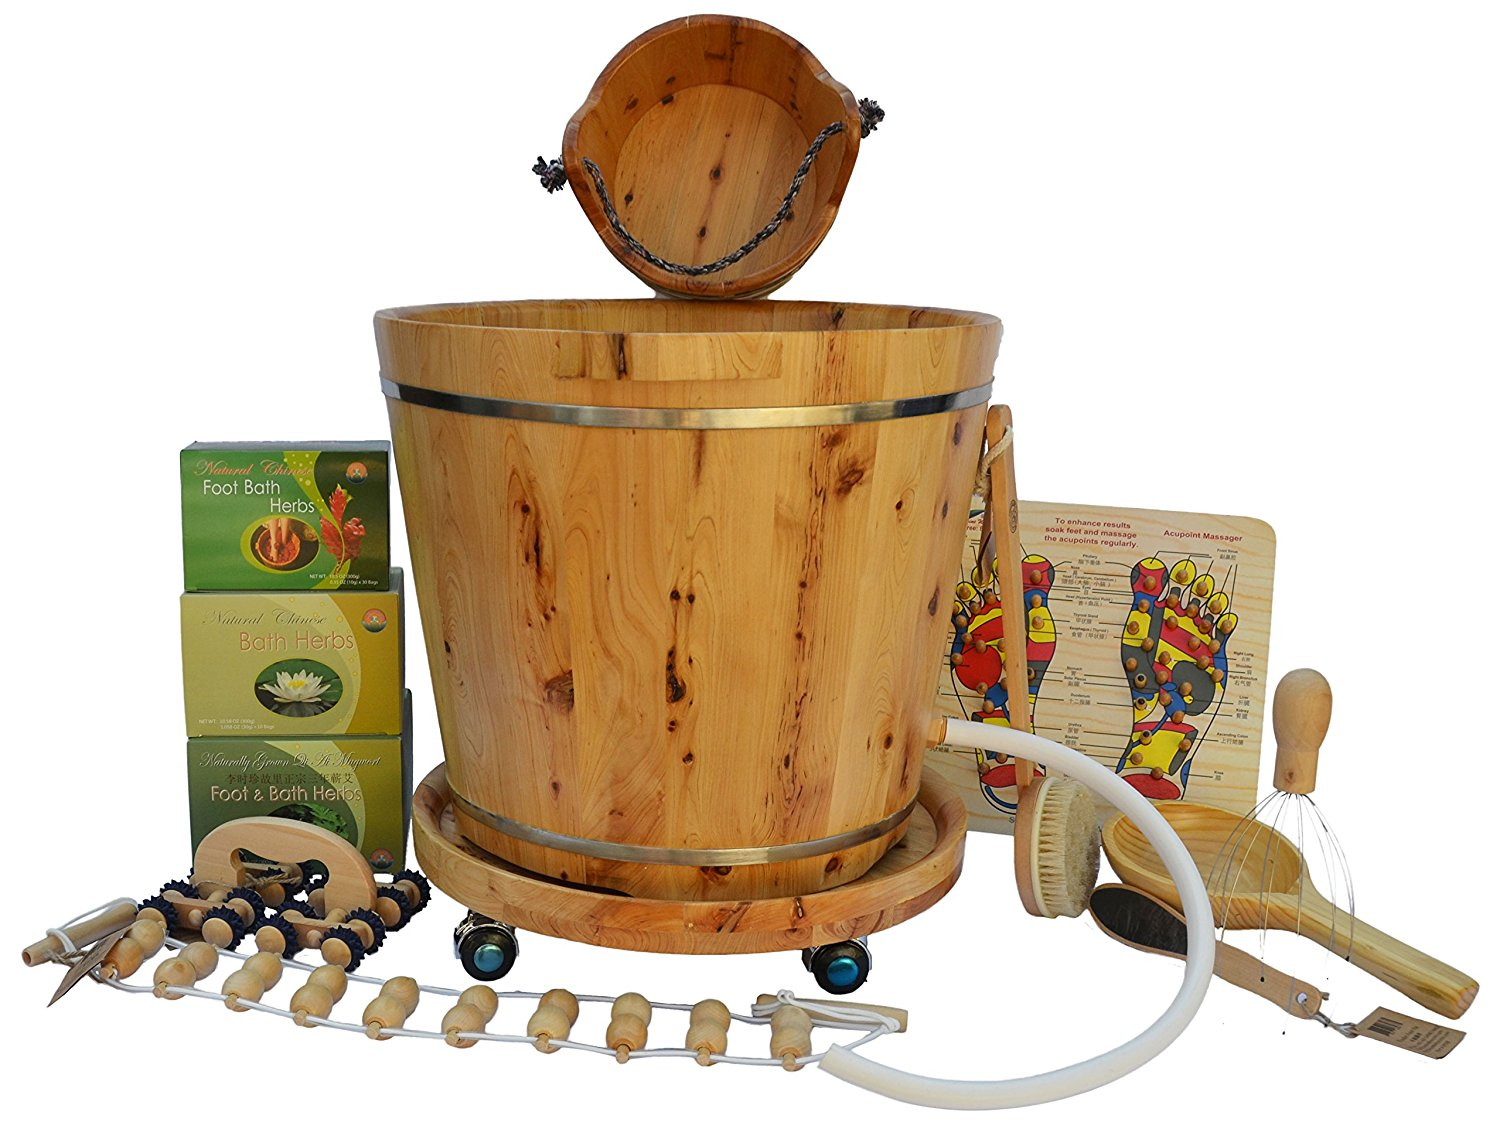 Shine Ultimate New Arrivals Foot Soak Spa Bundle - 13 items: Tall Cedar Wood Tub with Drainage Hole & Tube, Small Cedar Wood Bucket, Cedar Wood Tub Wheels, Acupoint Foot Board, Head/Scalp Massager